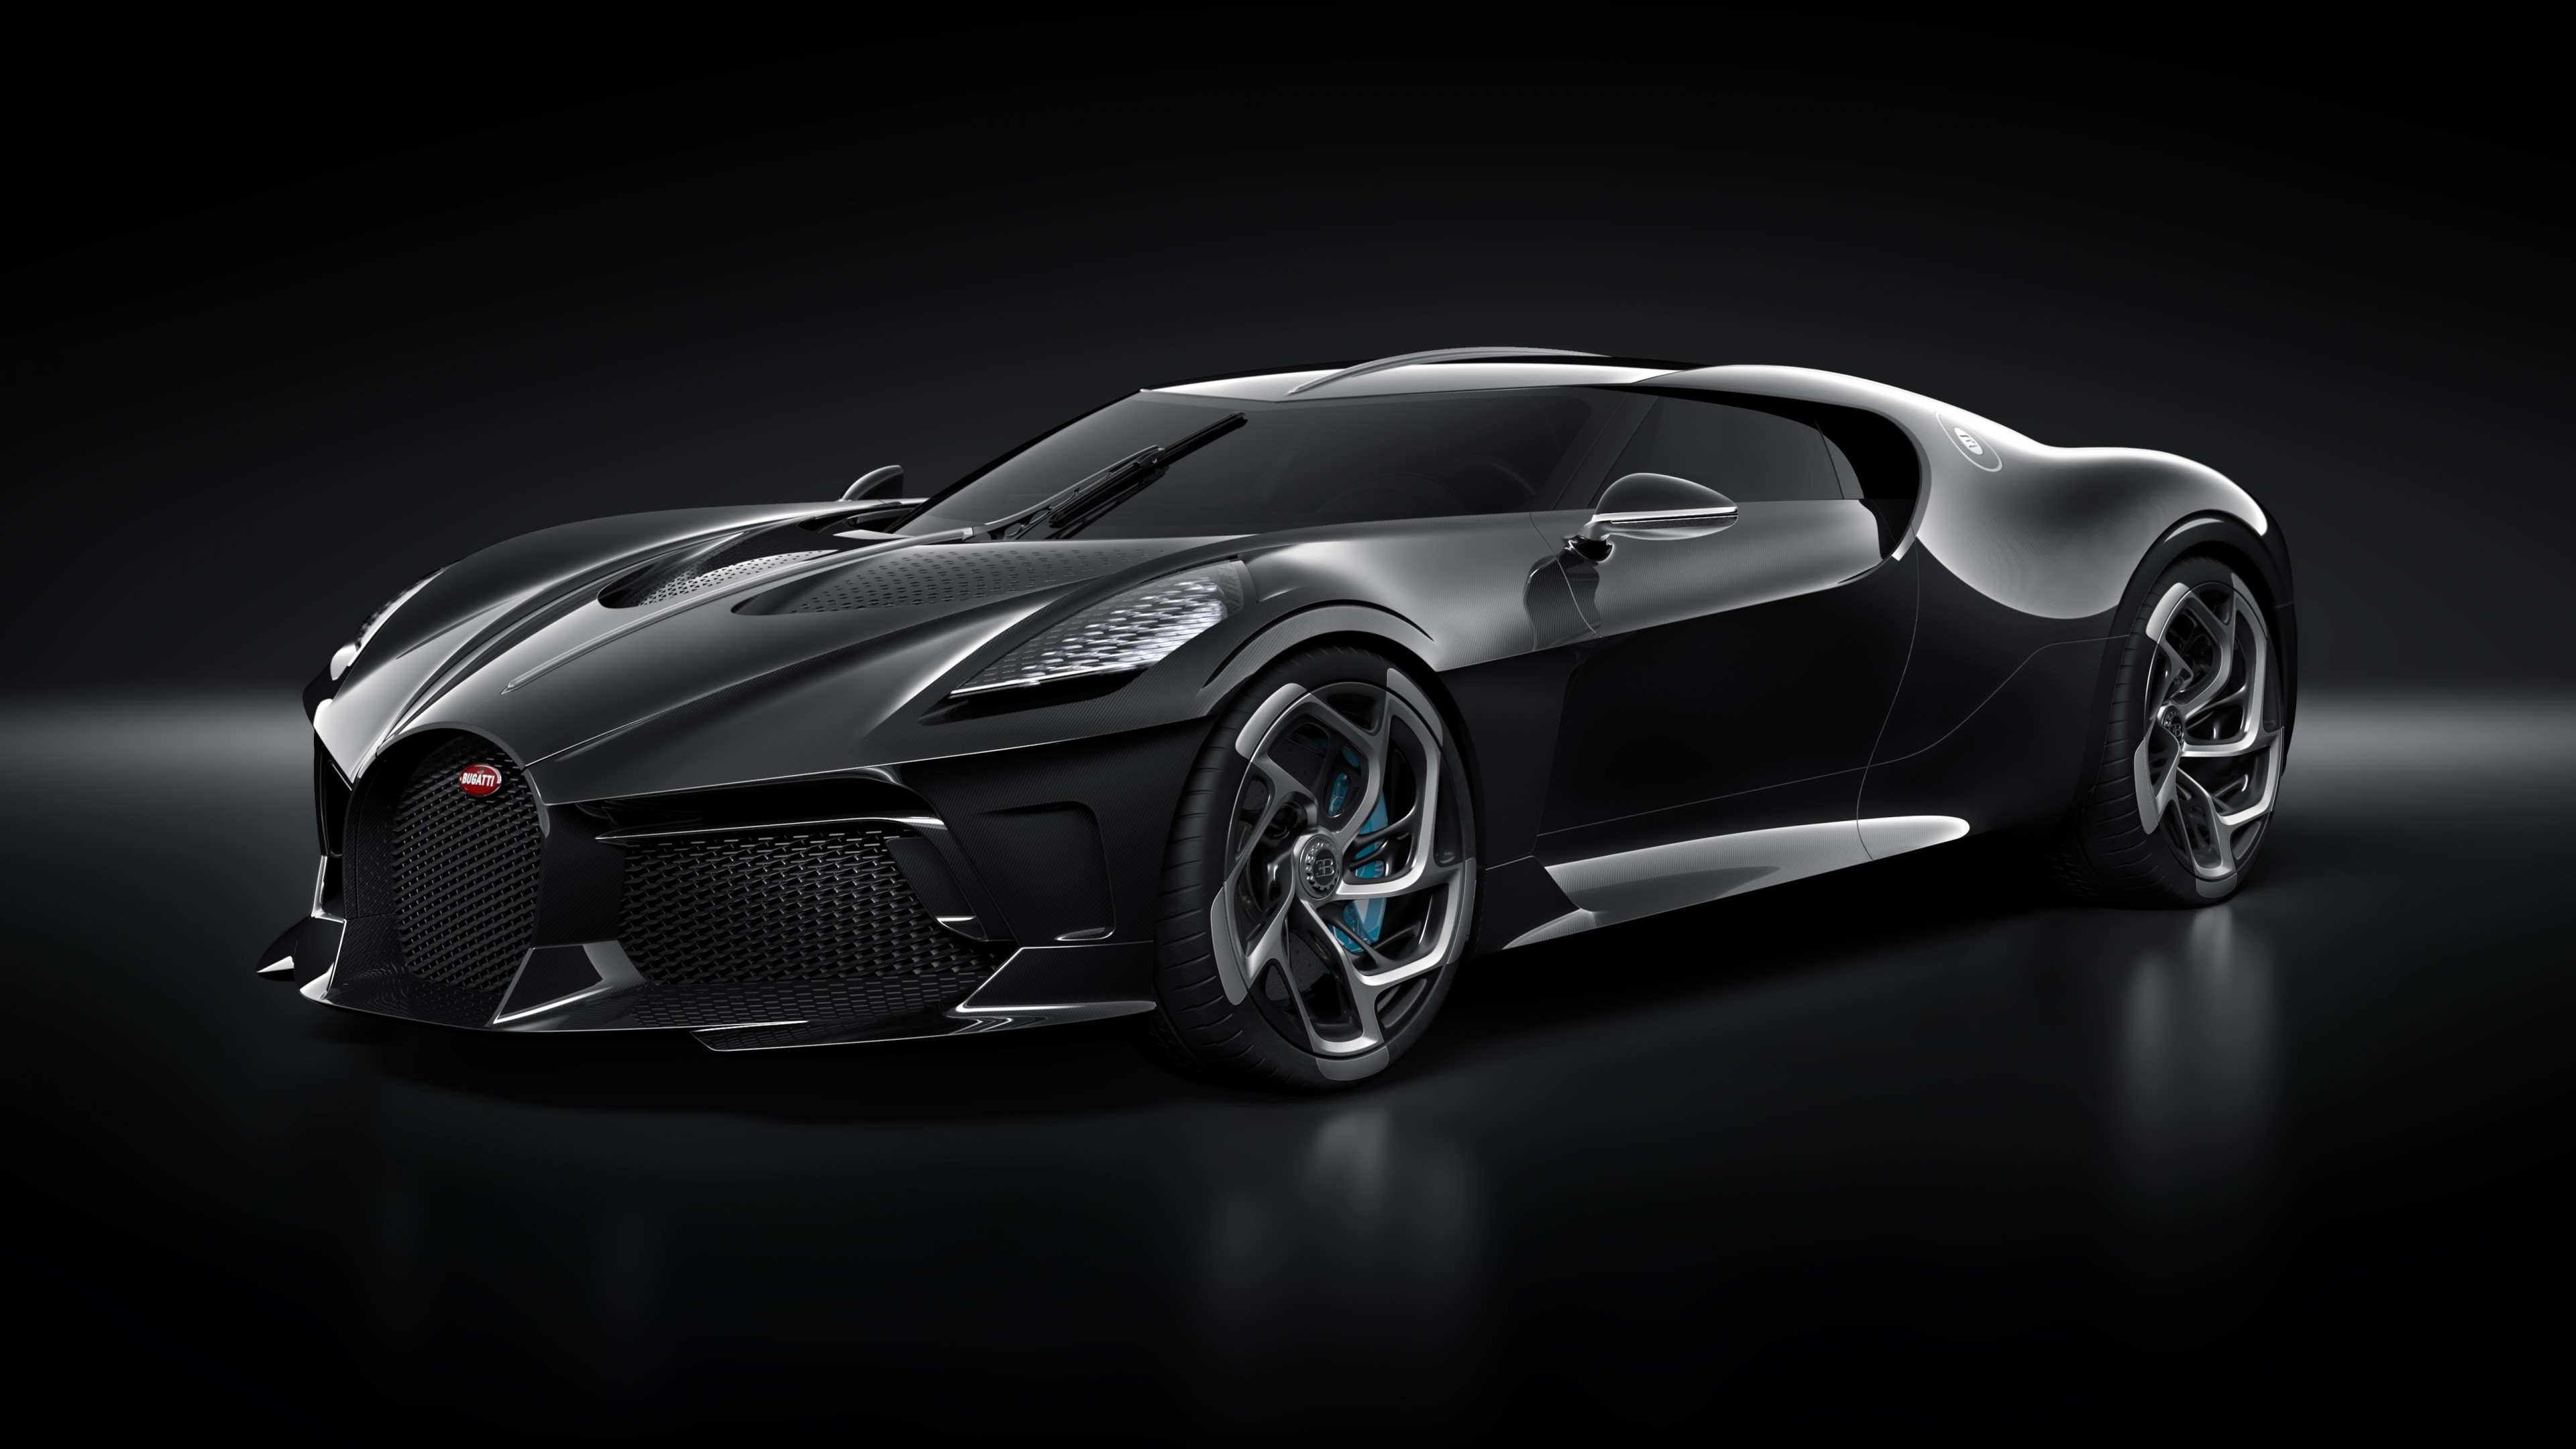 Bugatti La Voiture Noire 2019 4k Wallpaper Hd Car Wallpapers Id 12201